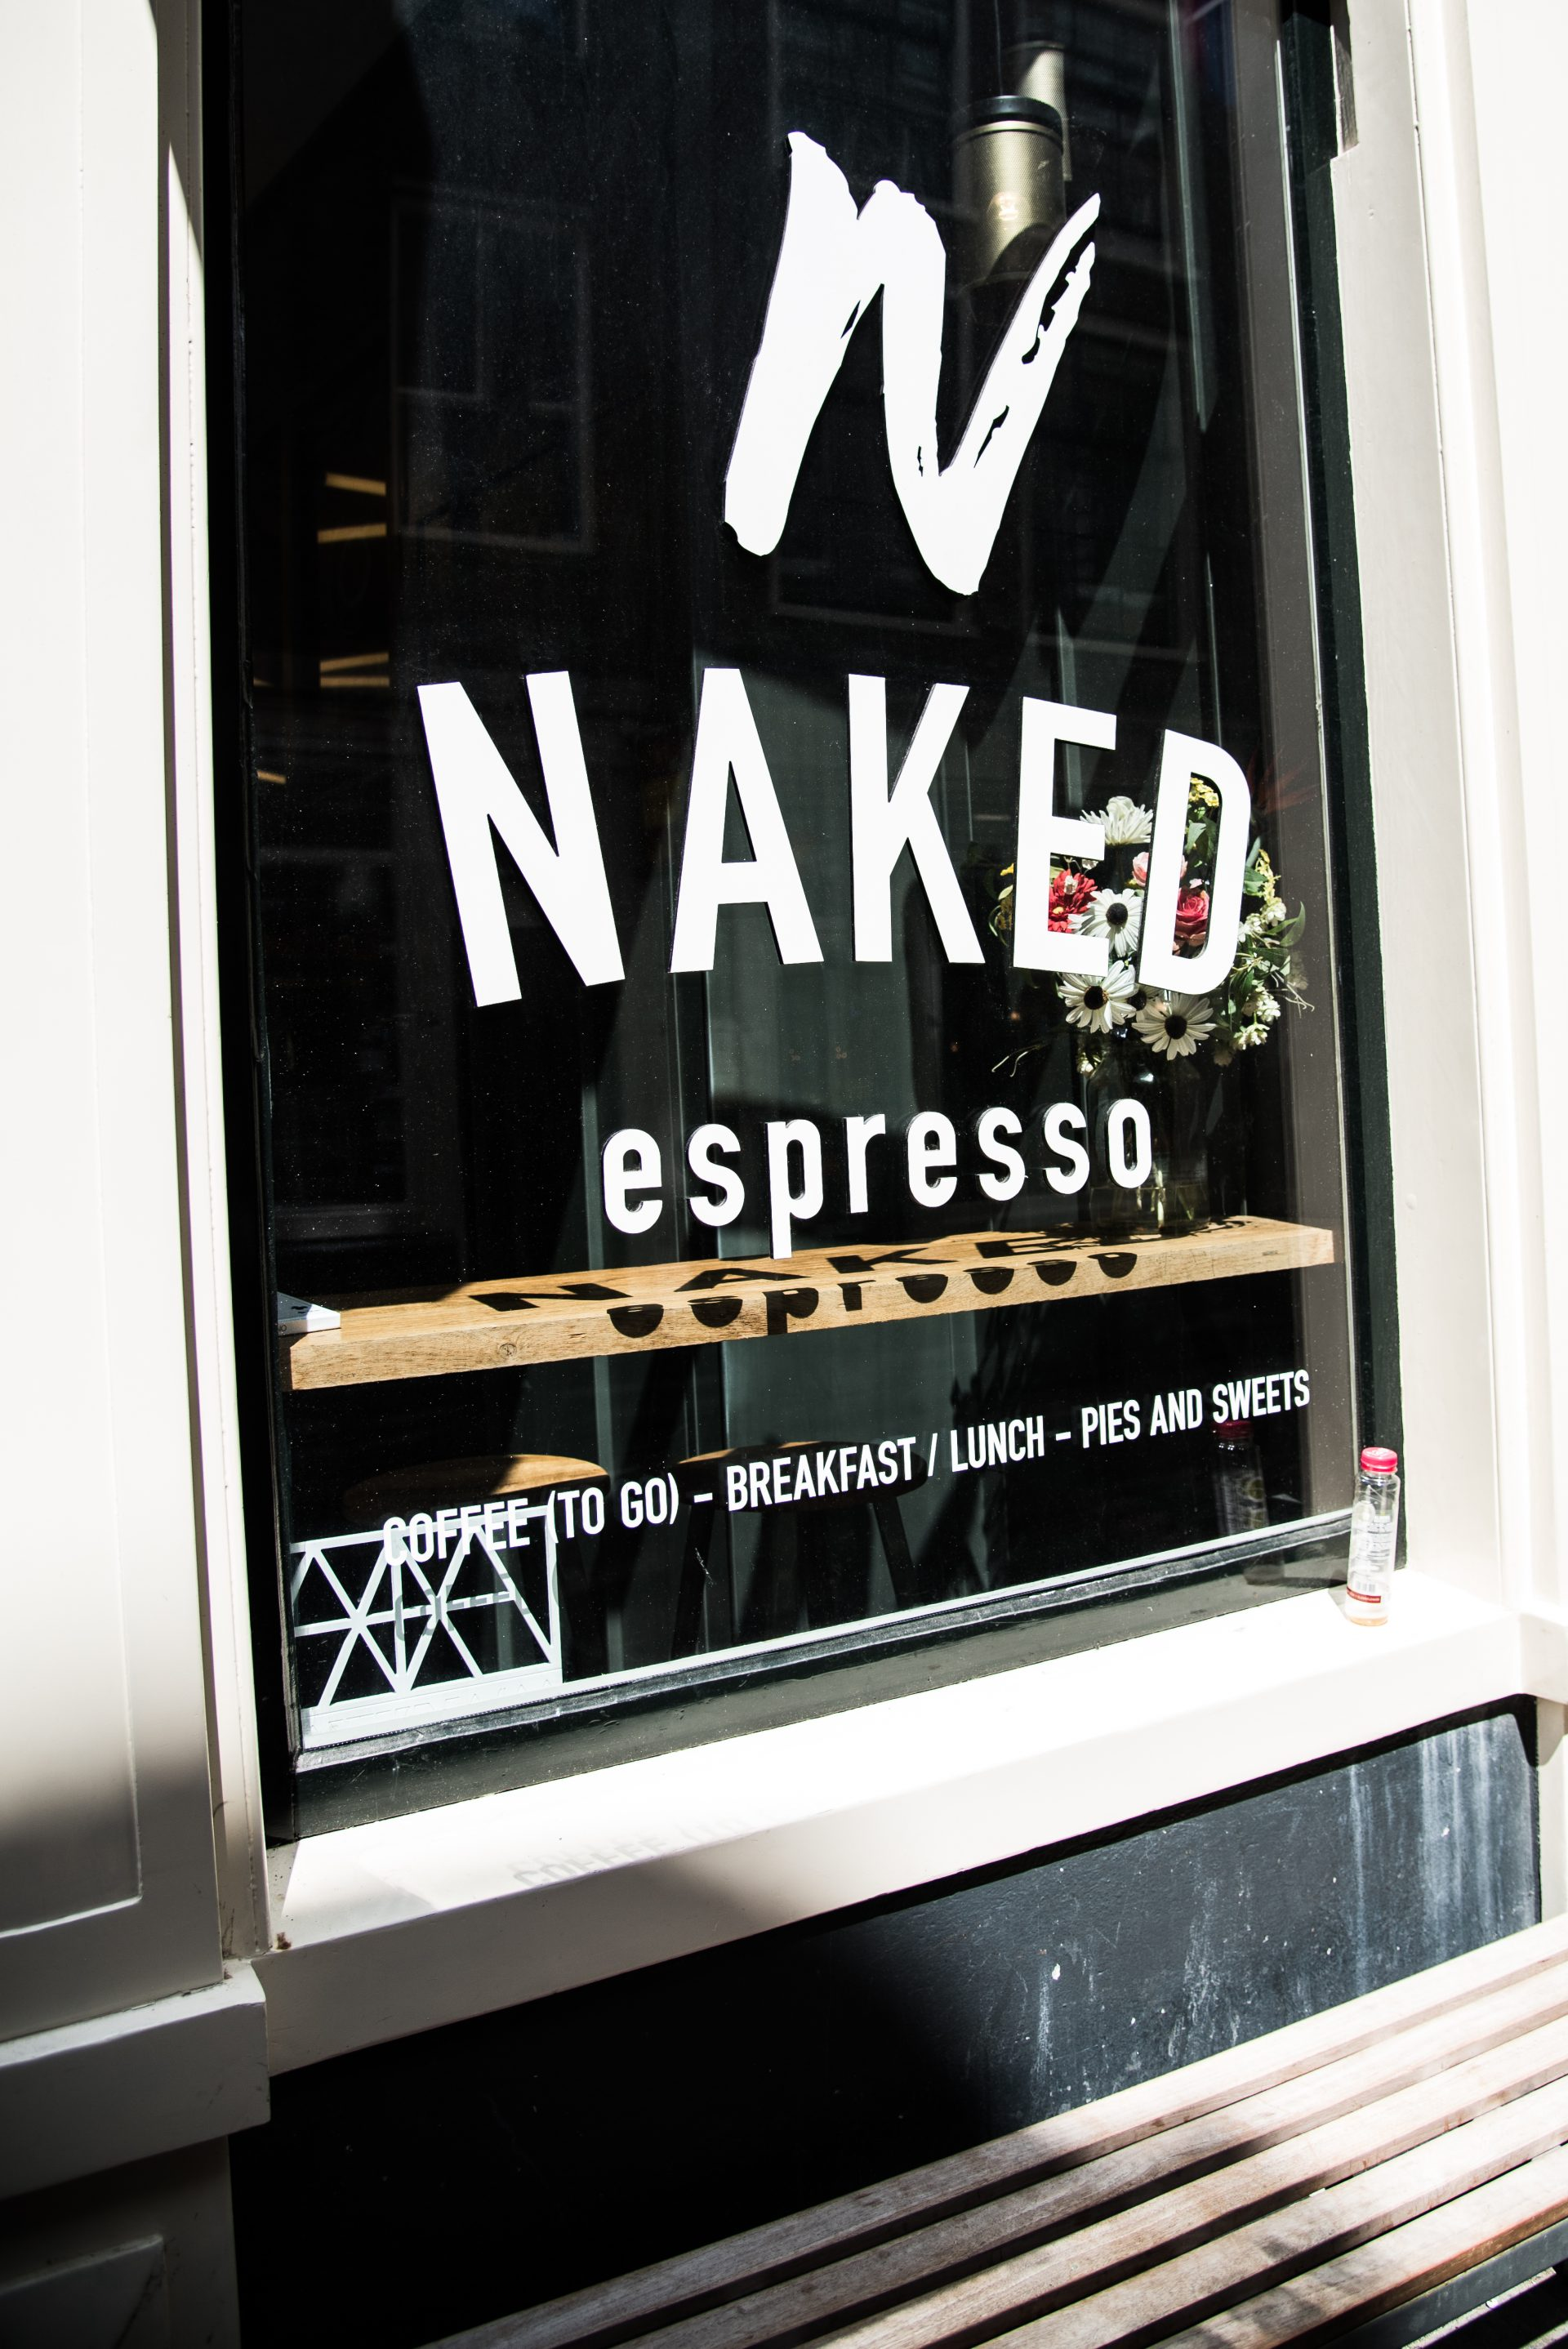 NAKED Espresso in Amsterdam